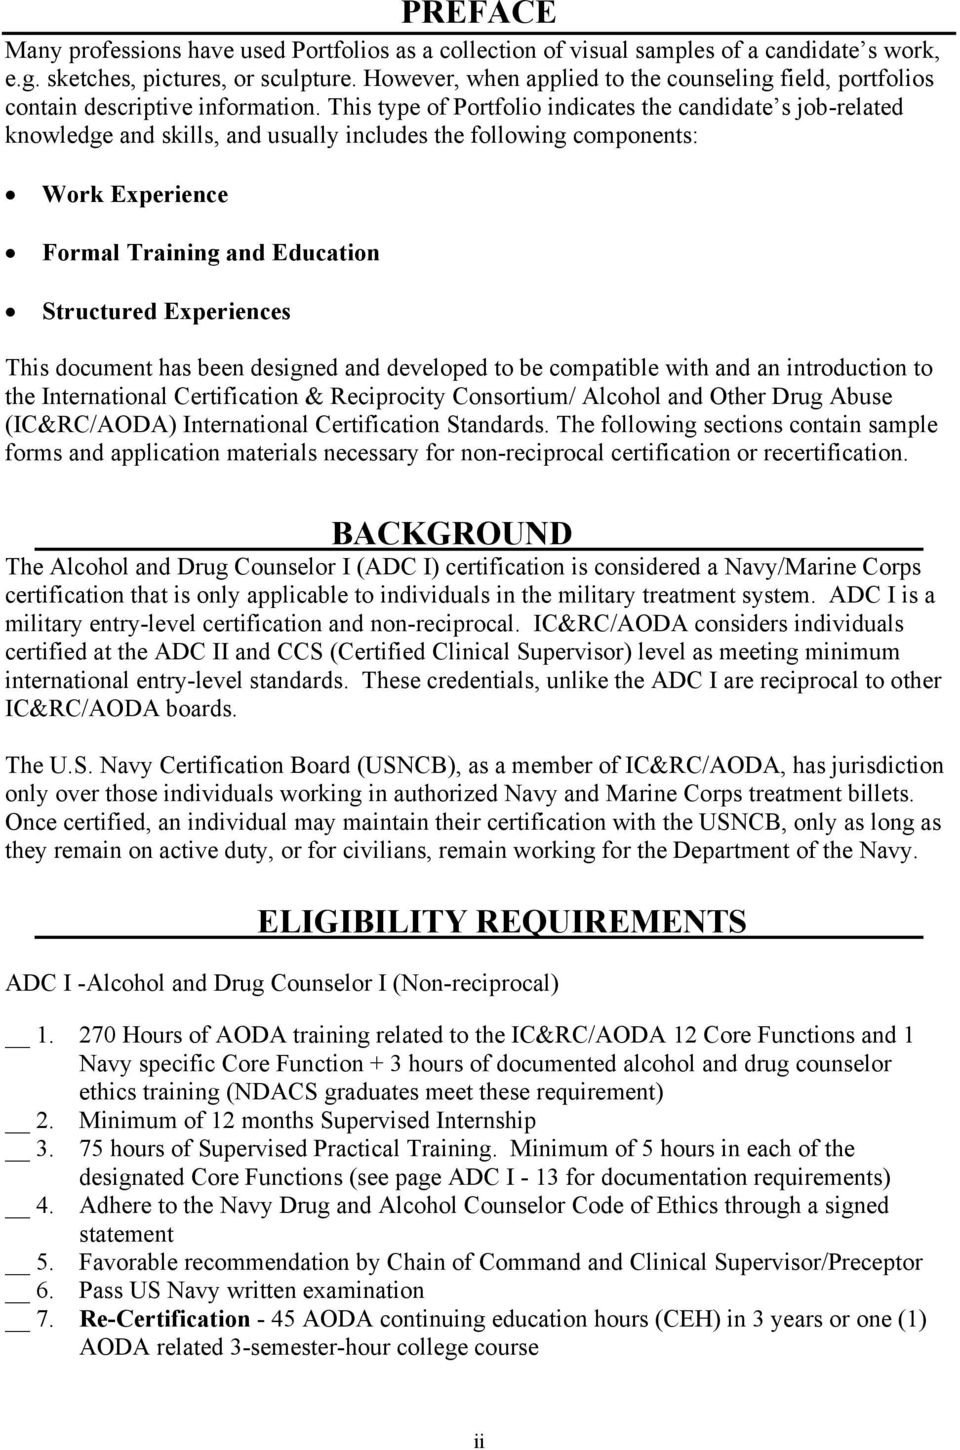 Alcohol Drug Counselor Pdf